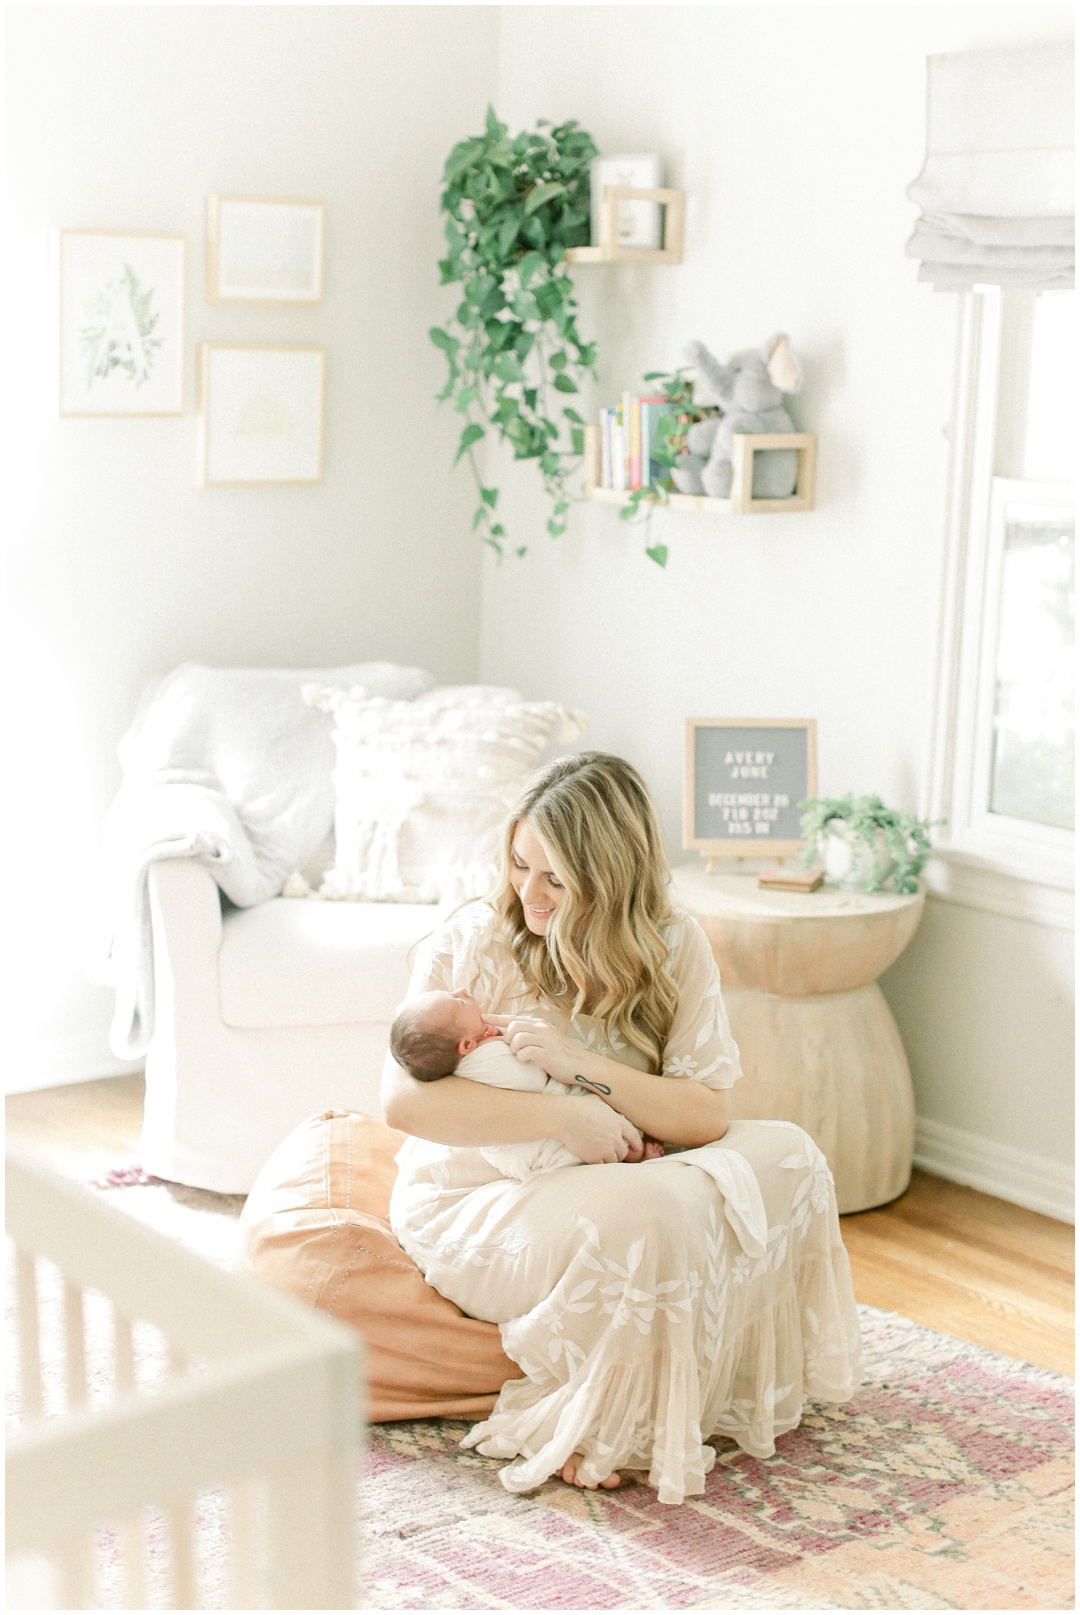 Newport_Beach_Newborn_Photographer_Newport_Beach_Maternity_Photographer_Orange_County_Family_Photographer_Cori_Kleckner_Photography_Huntington_Beach_Photographer__Erin_Dooney_Brandon_Dooney__Avery_Dooney_Family_Photos__2838.jpg